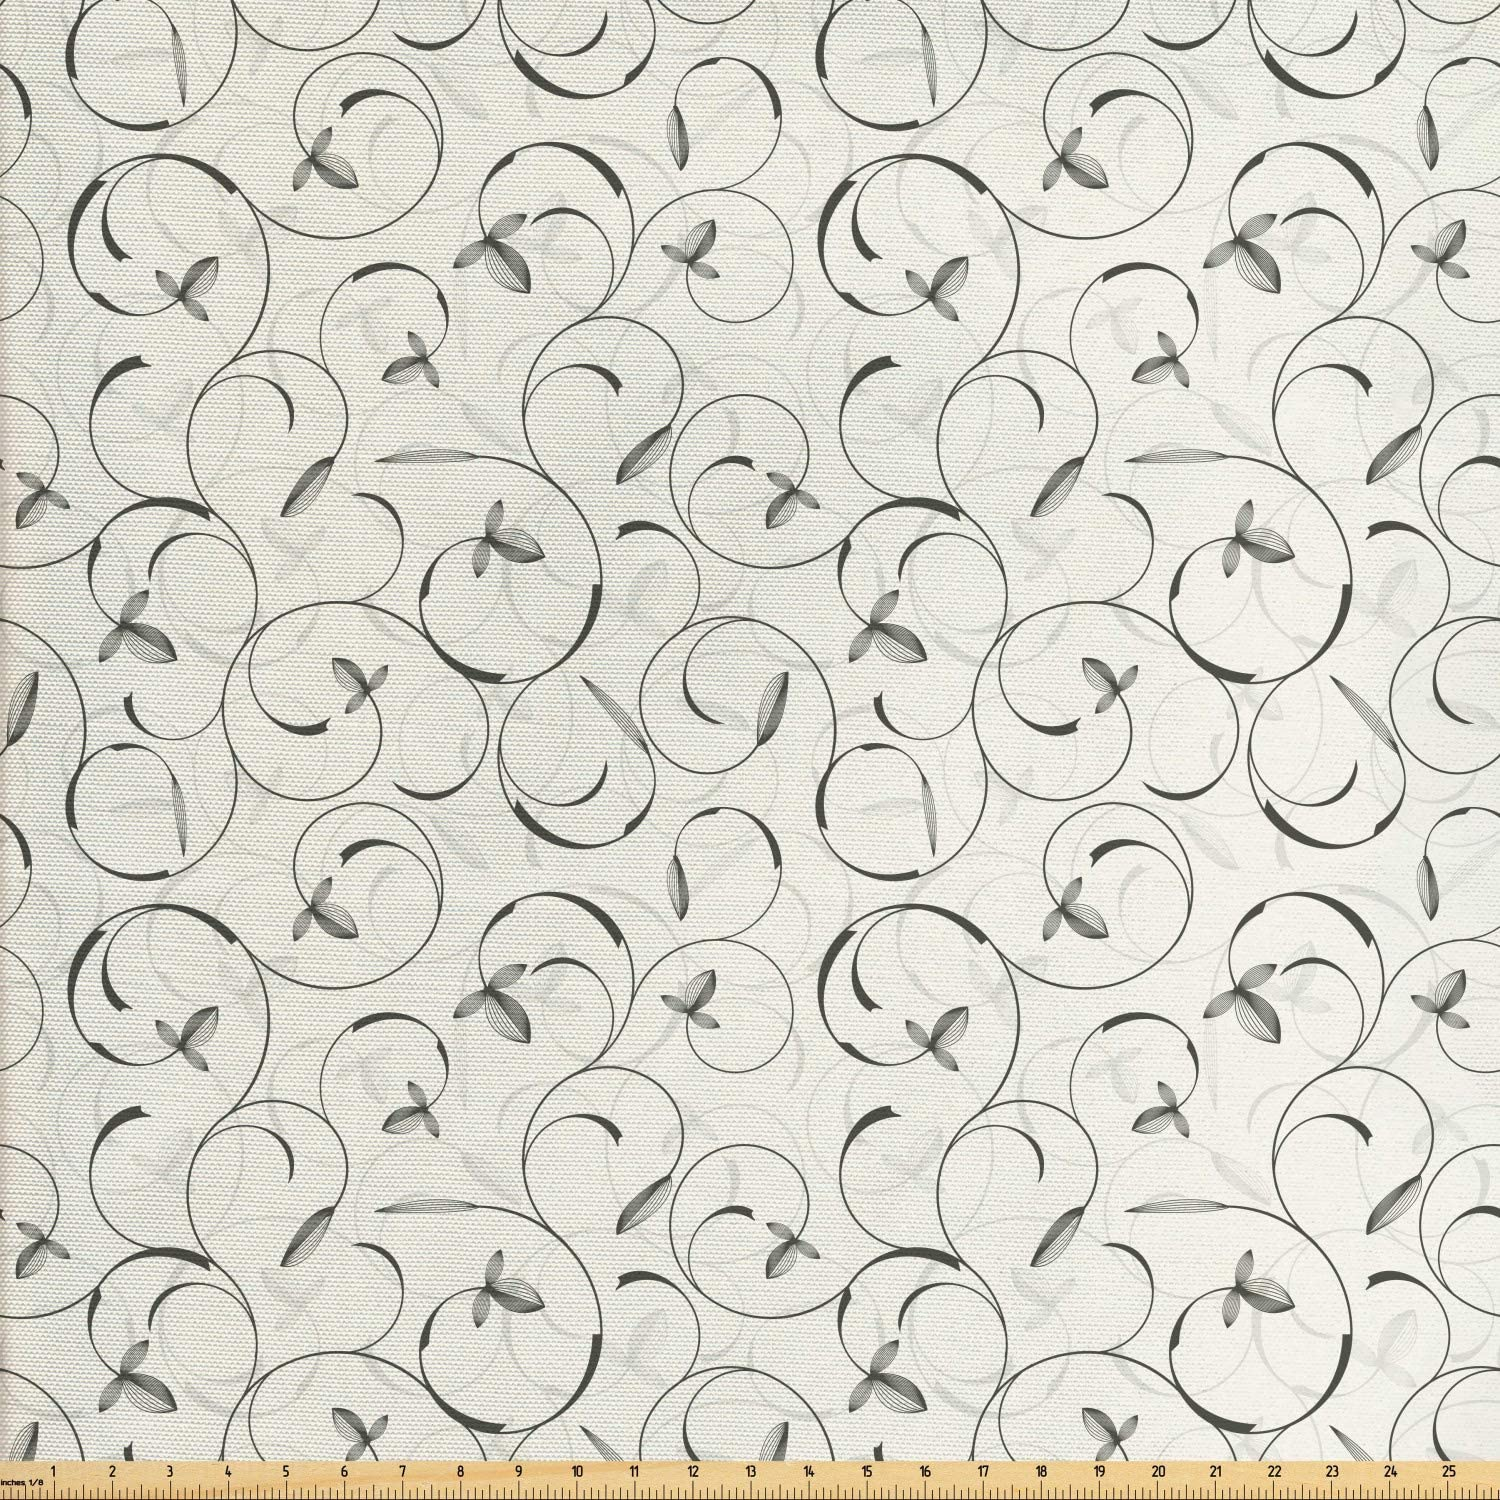 Lunarable Grey Fabric by The Yard, Swirling Floral Pattern in The Springtime Inspired Curved Stems and Forms Print, Decorative Fabric for Upholstery and Home Accents, 2 Yards, Grey